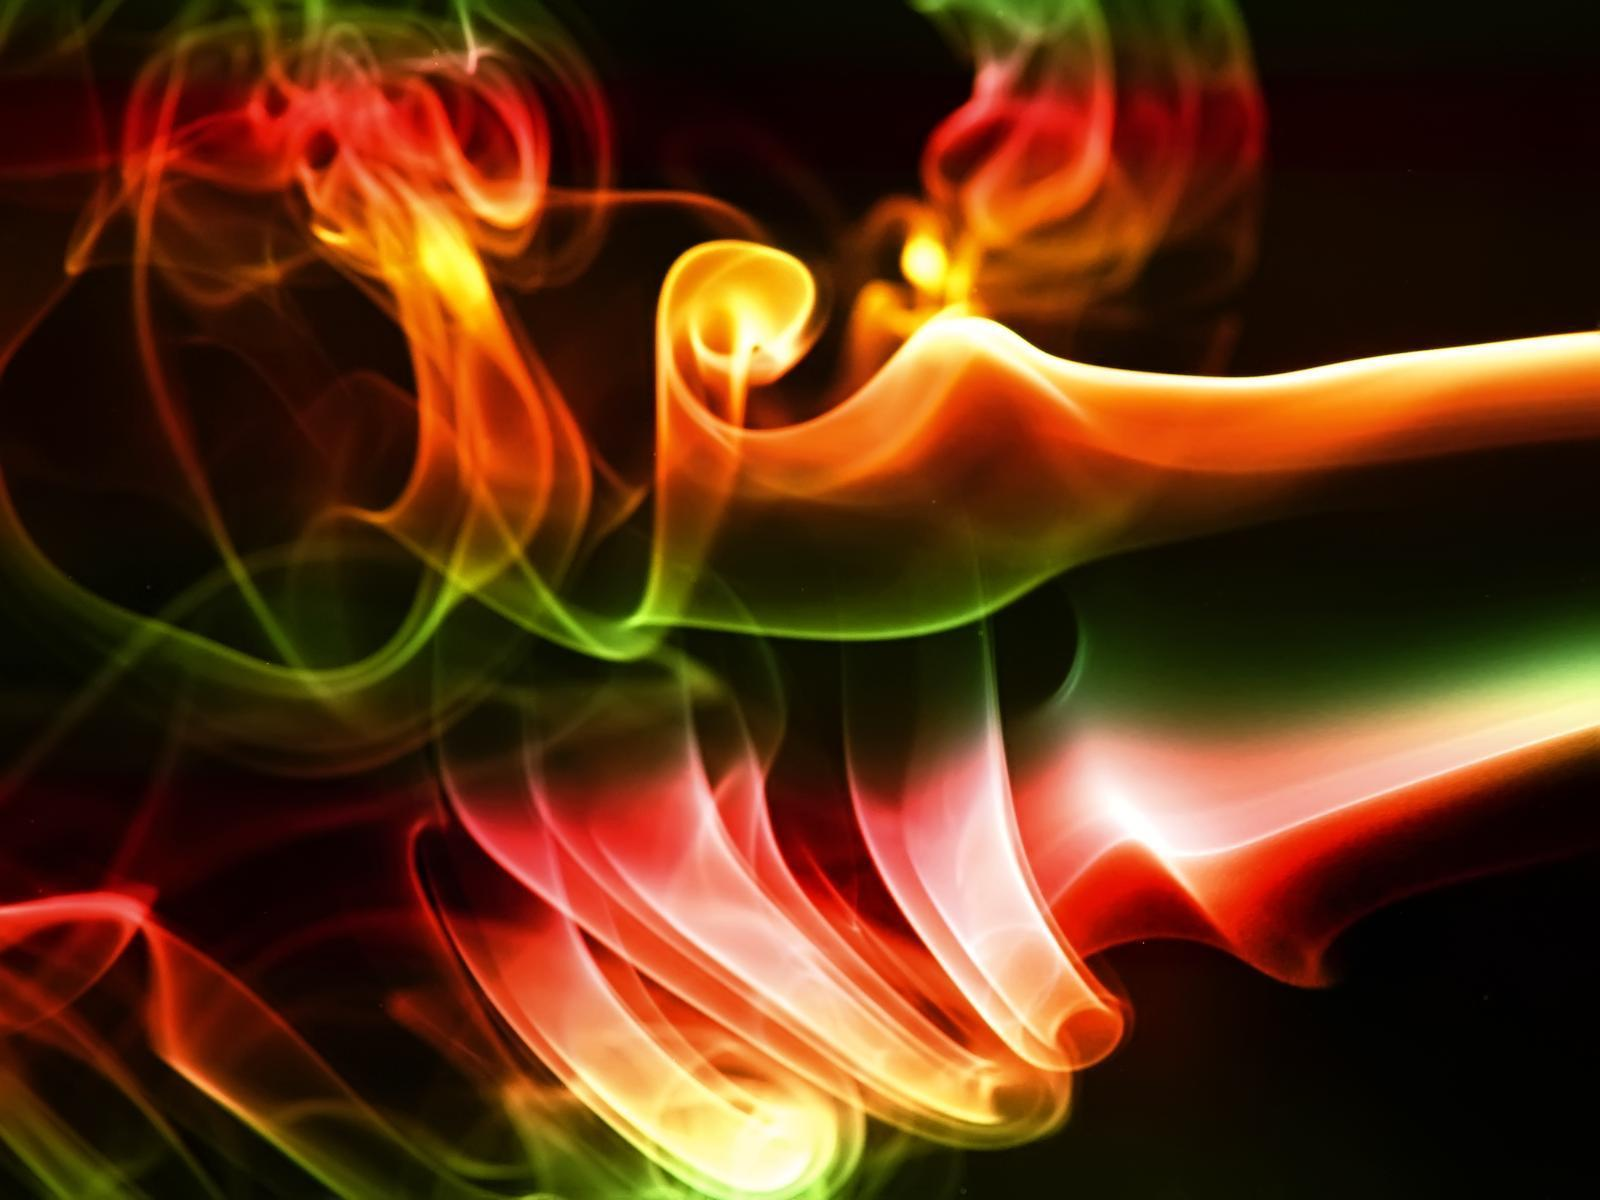 rasta smoke wallpaper moving - photo #5